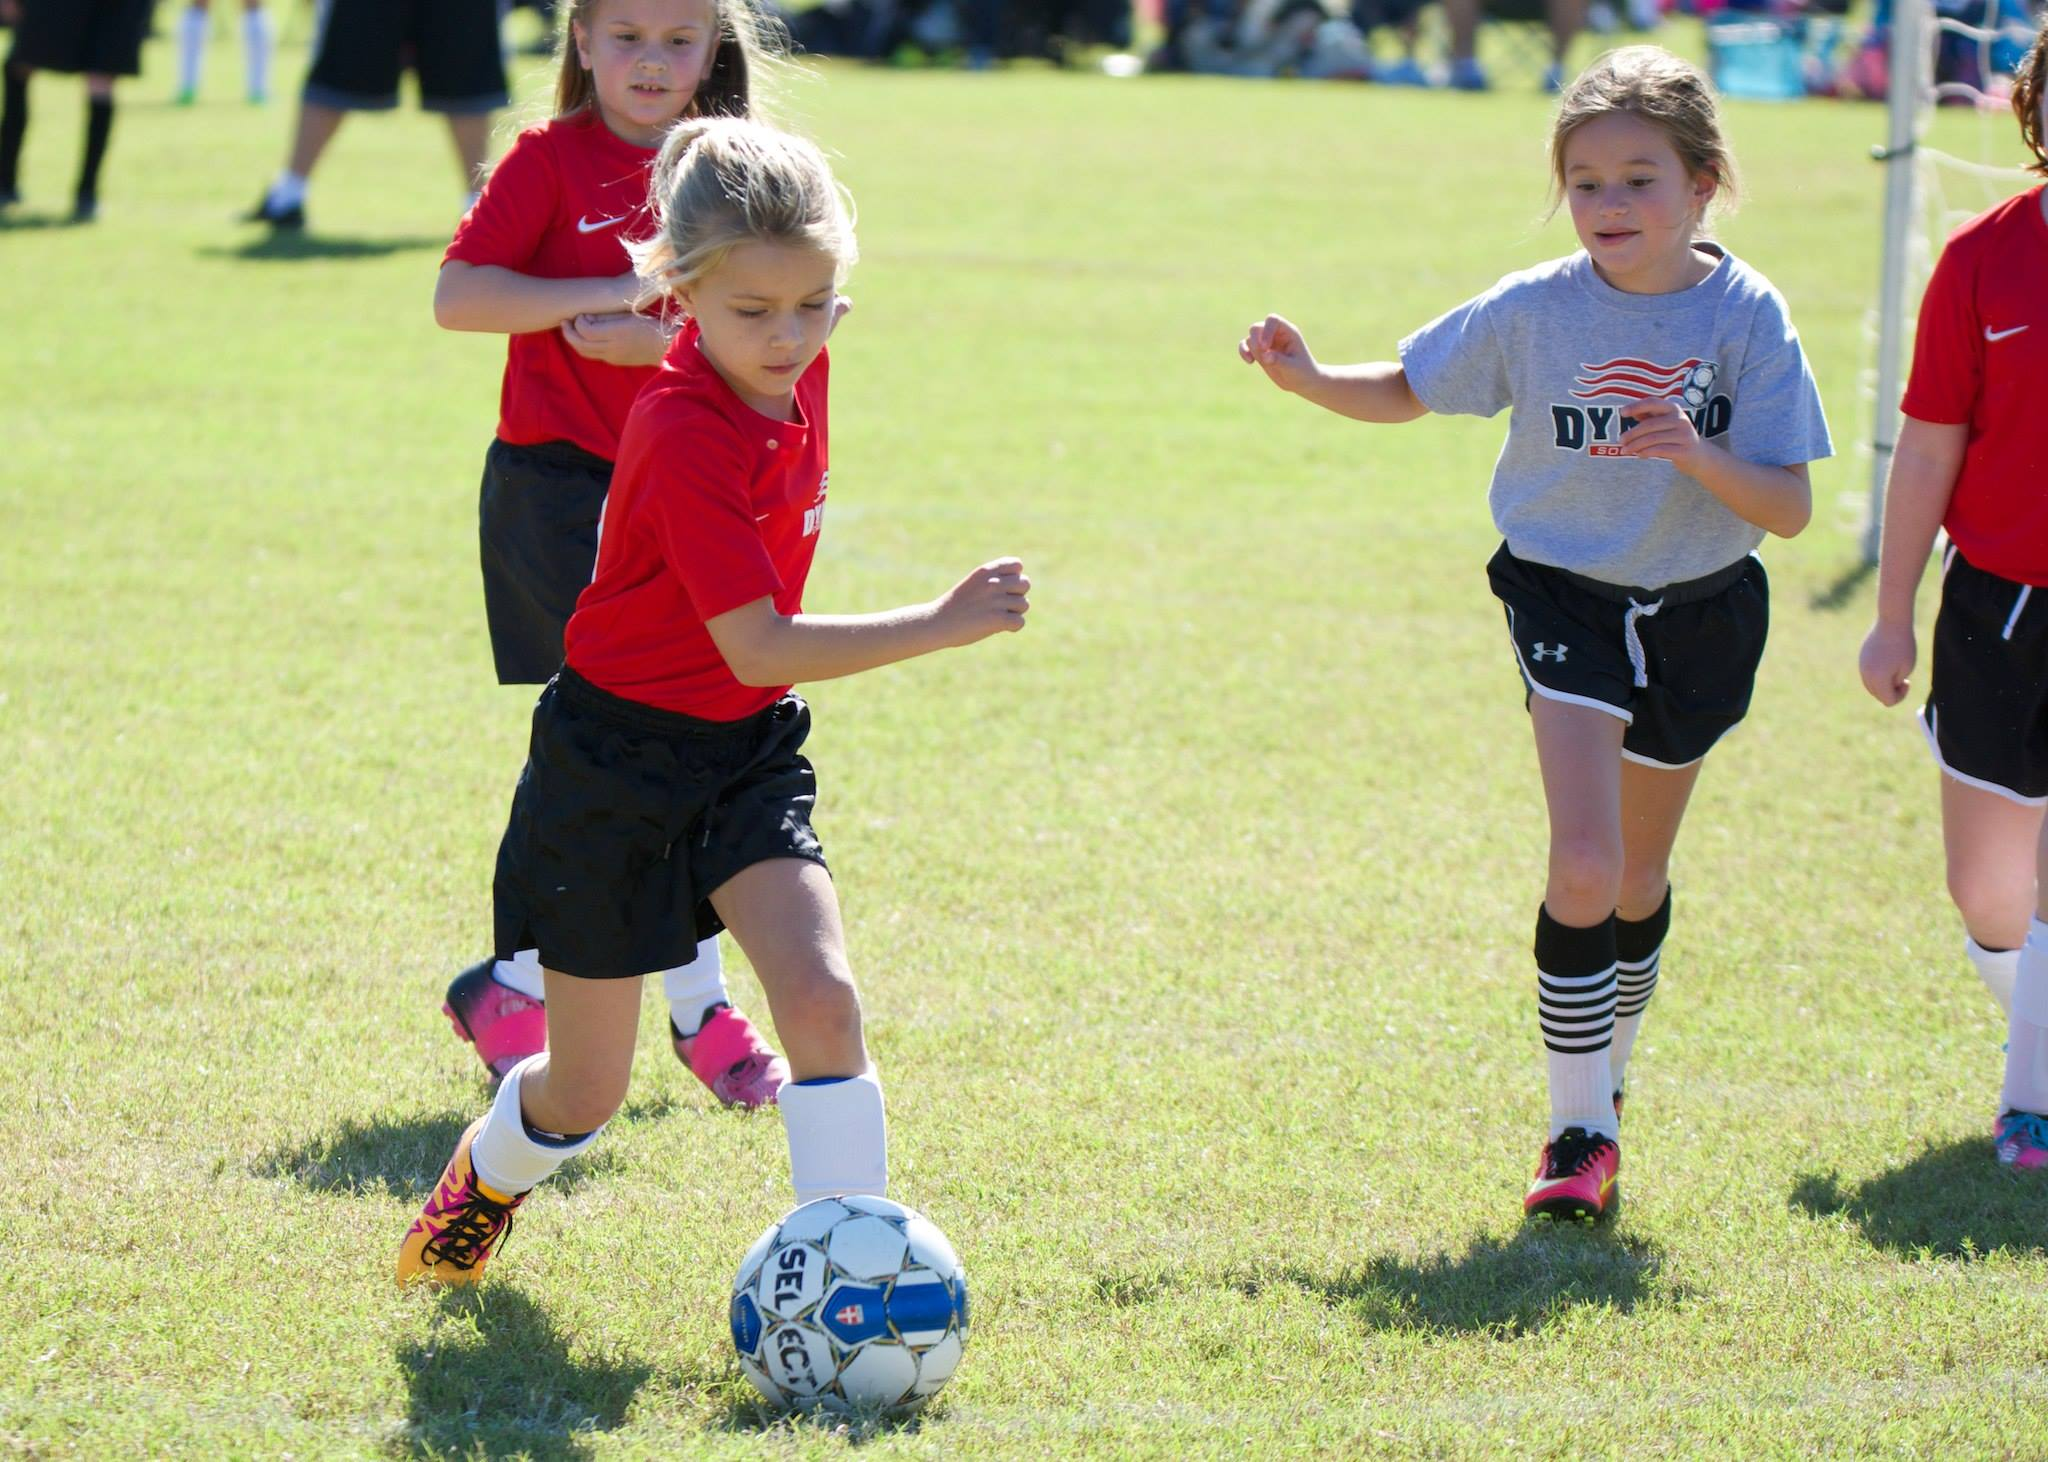 U9 Academy Program (Fees and Logistics)